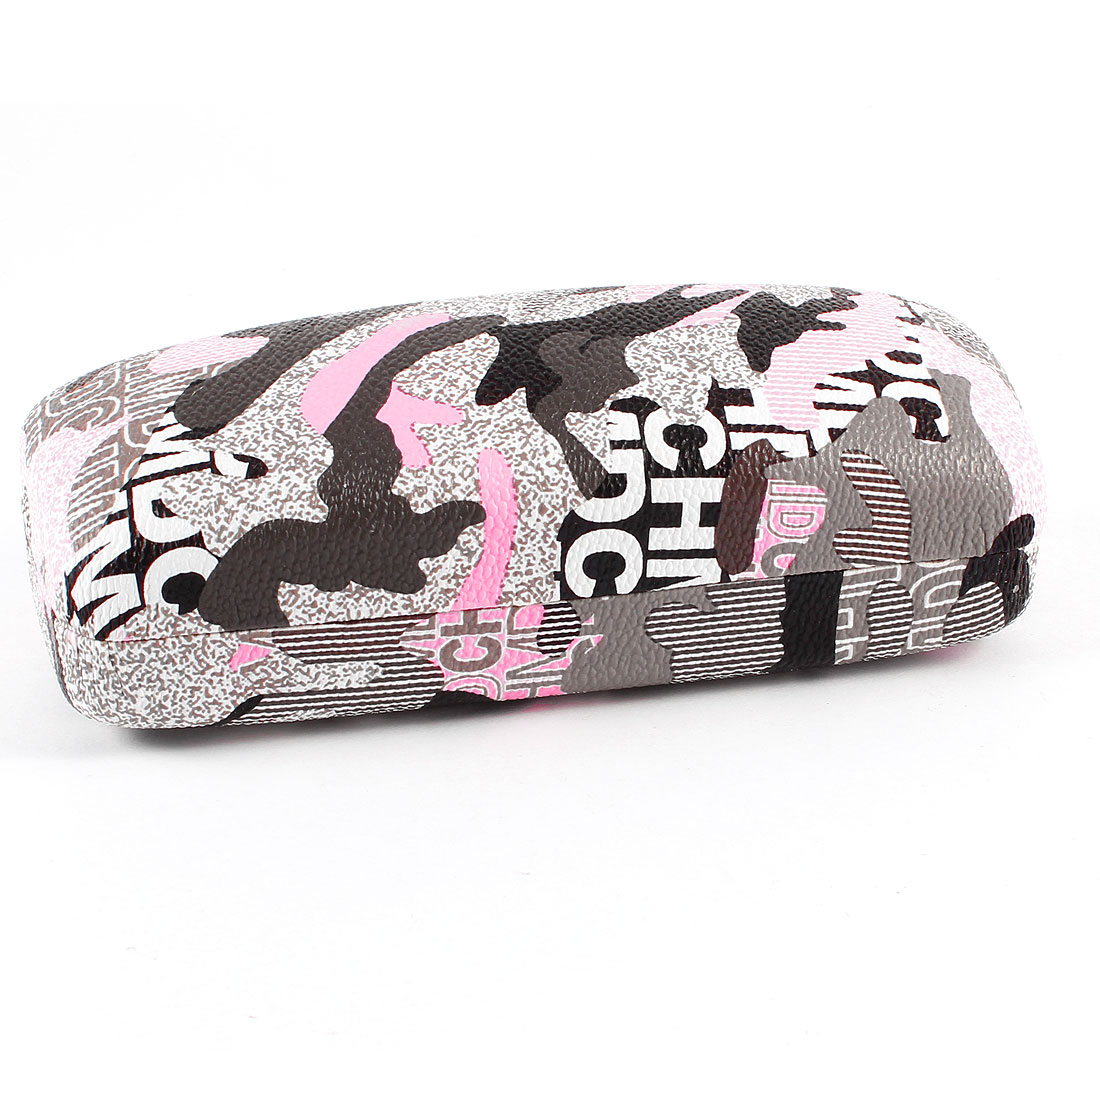 Camouflage Pattern Metal Case Box Pink Black for Eyeglasses